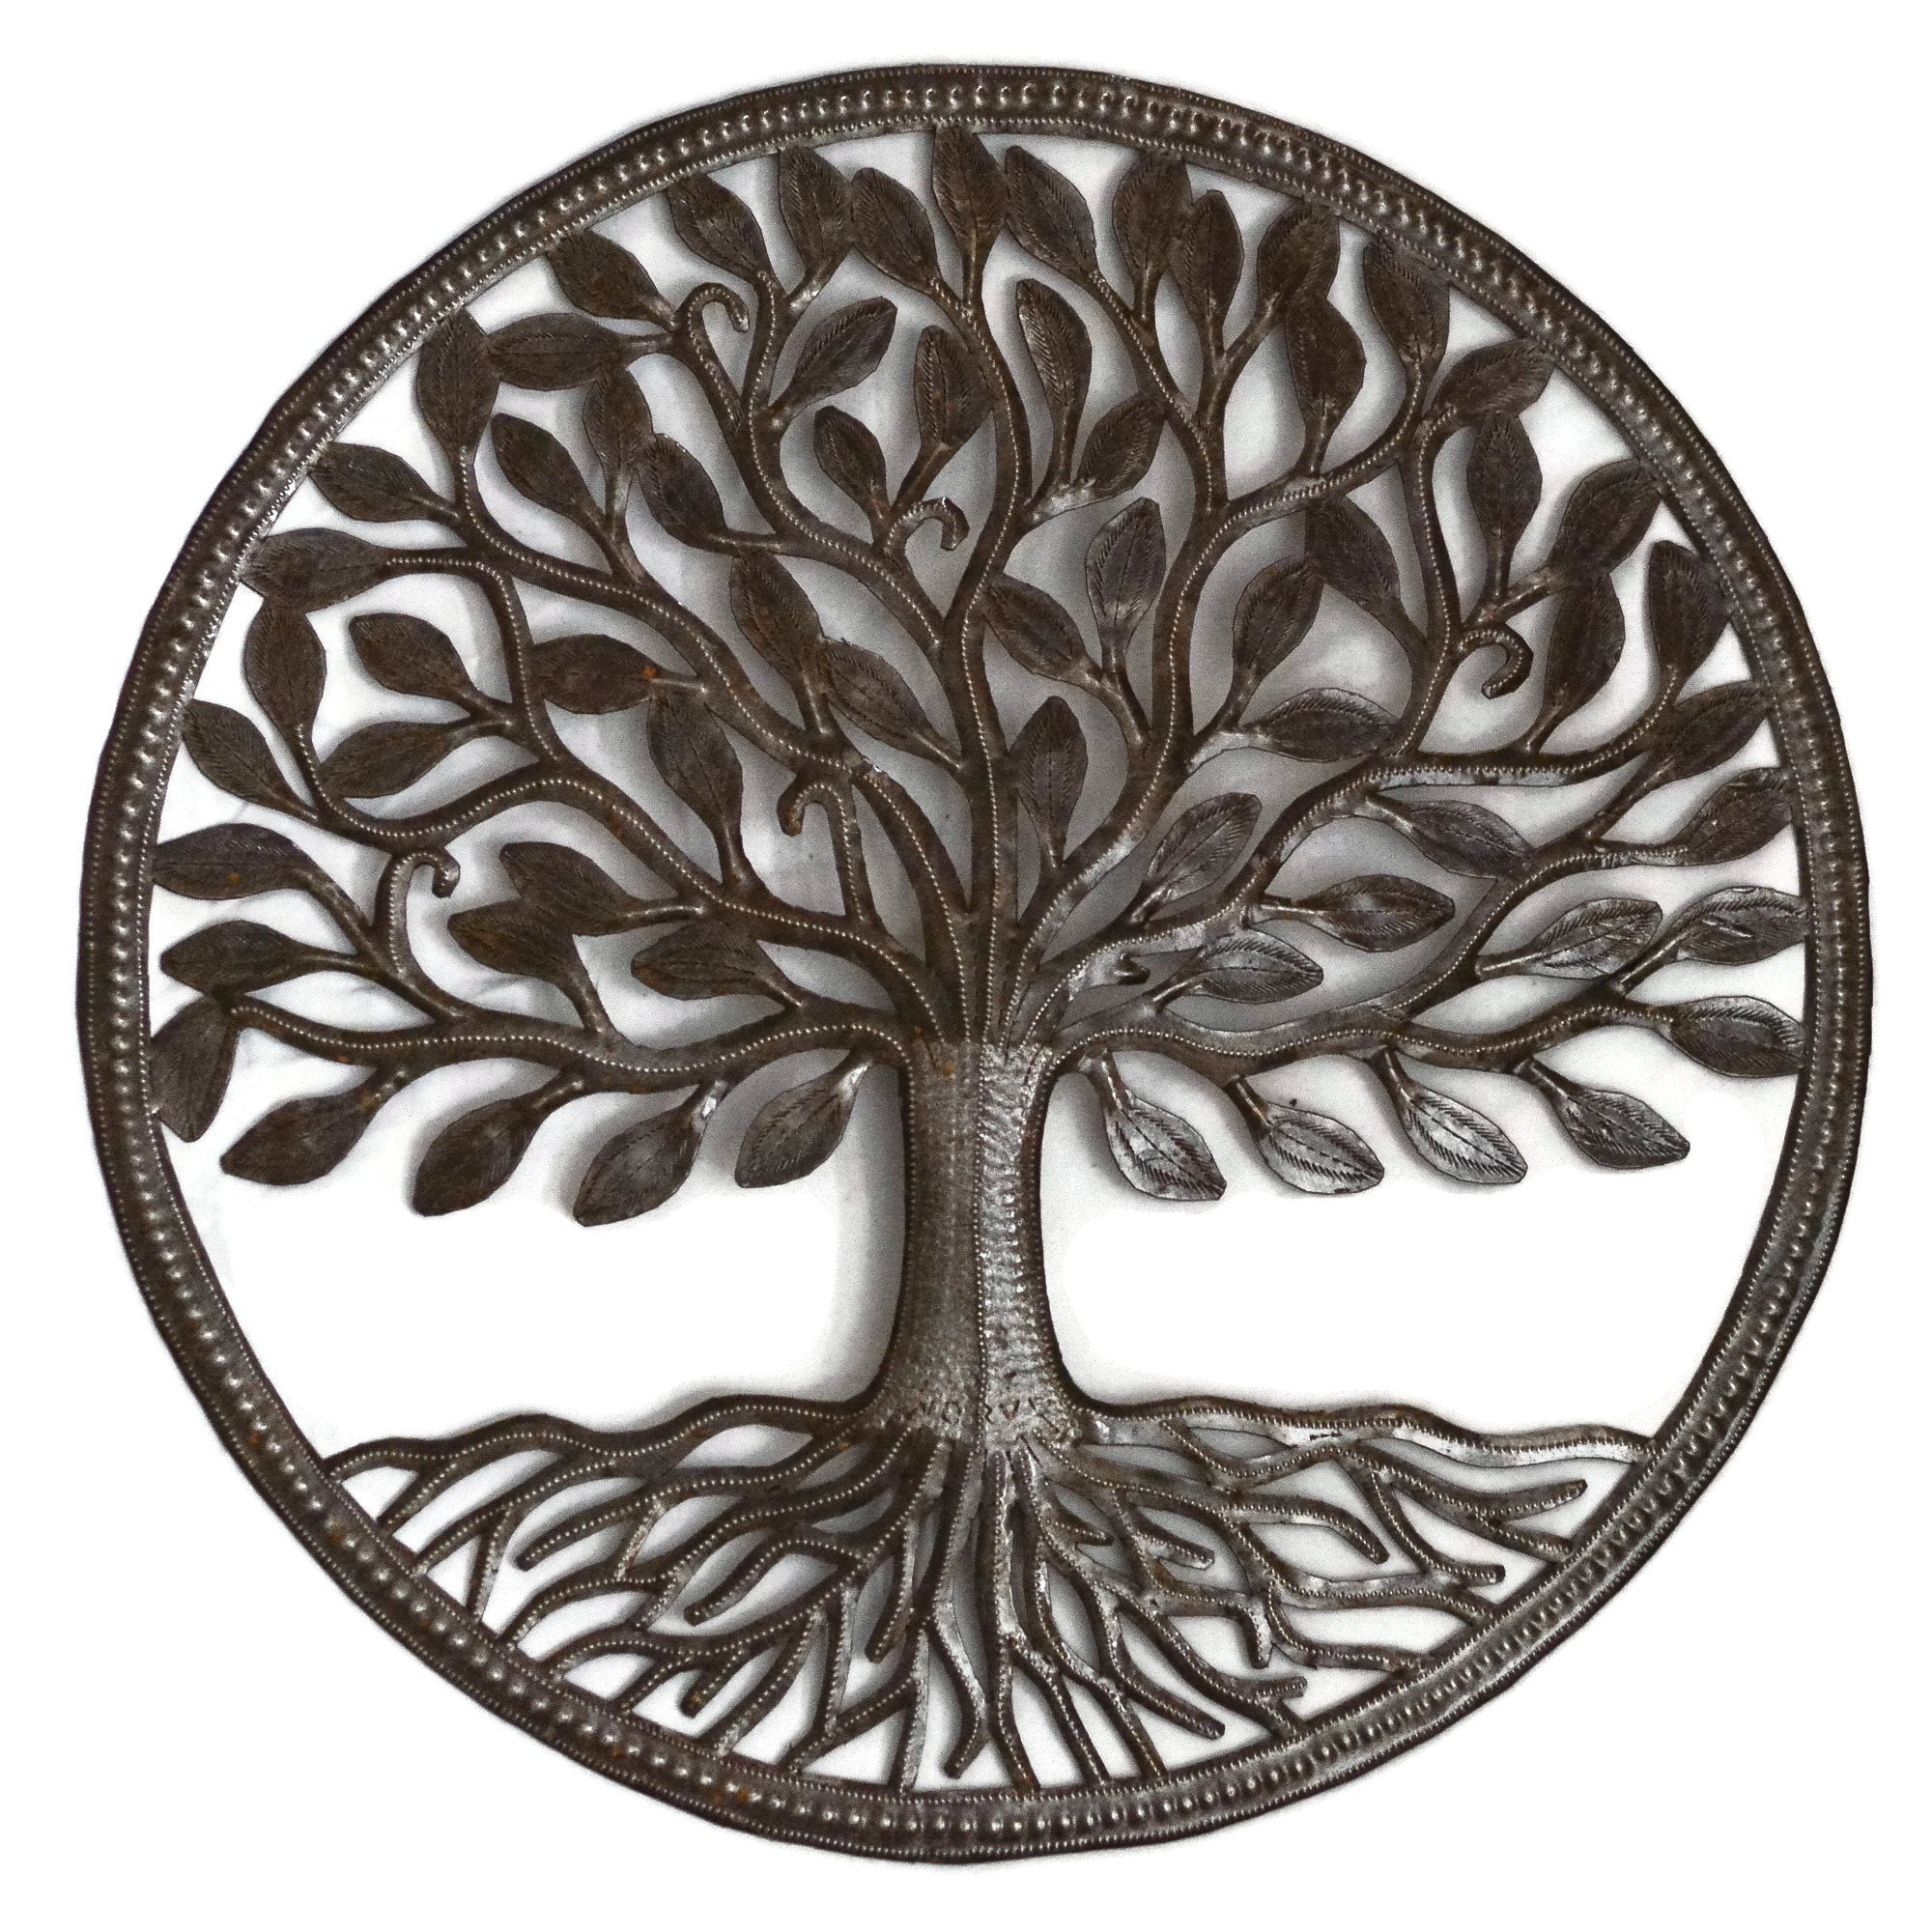 Haitian Steel Drum Organic Tree of Life 23 x 23 inches Recycled Metal Art from Haiti, Decorative Wall Hanging Fair Trade Federation Certified by it's cactus - metal art haiti